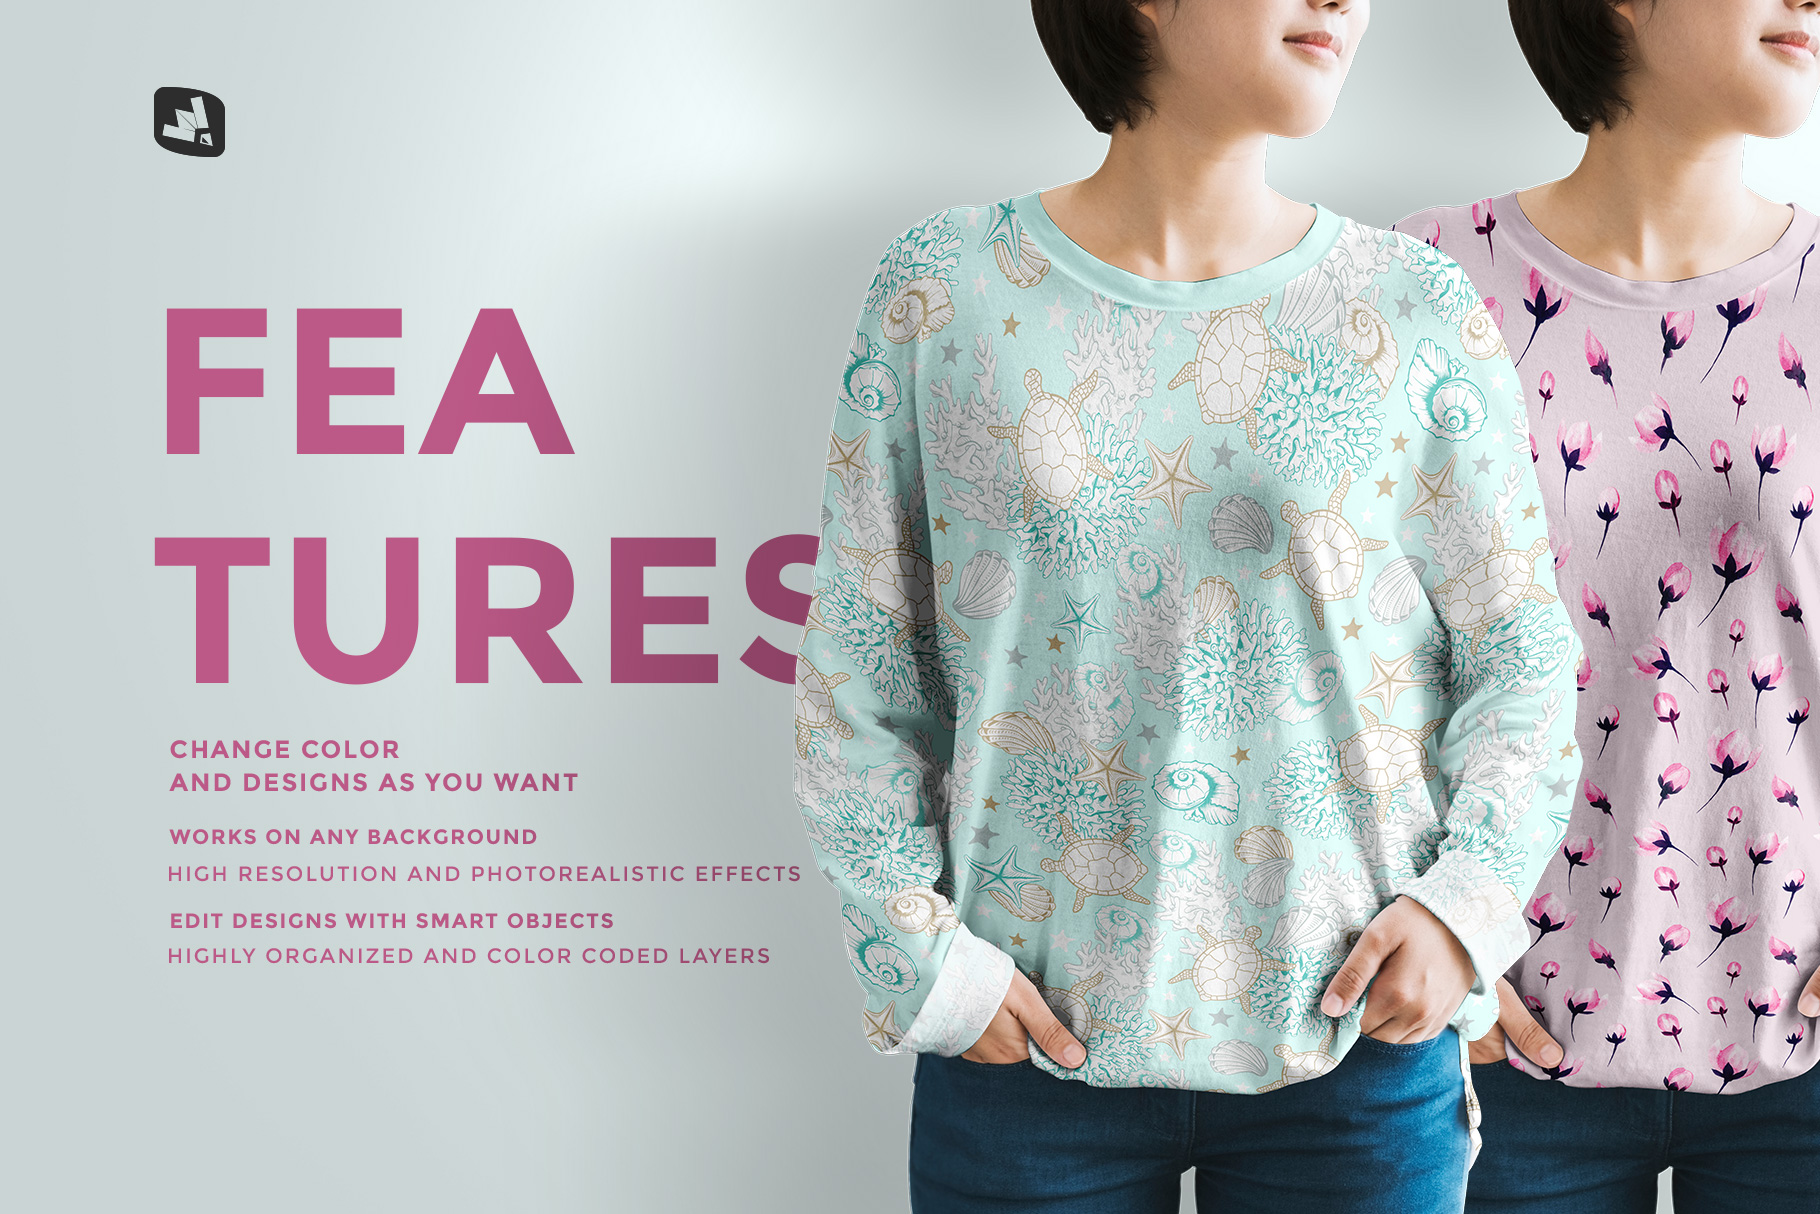 features of the women's full sleeve tshirt mockup